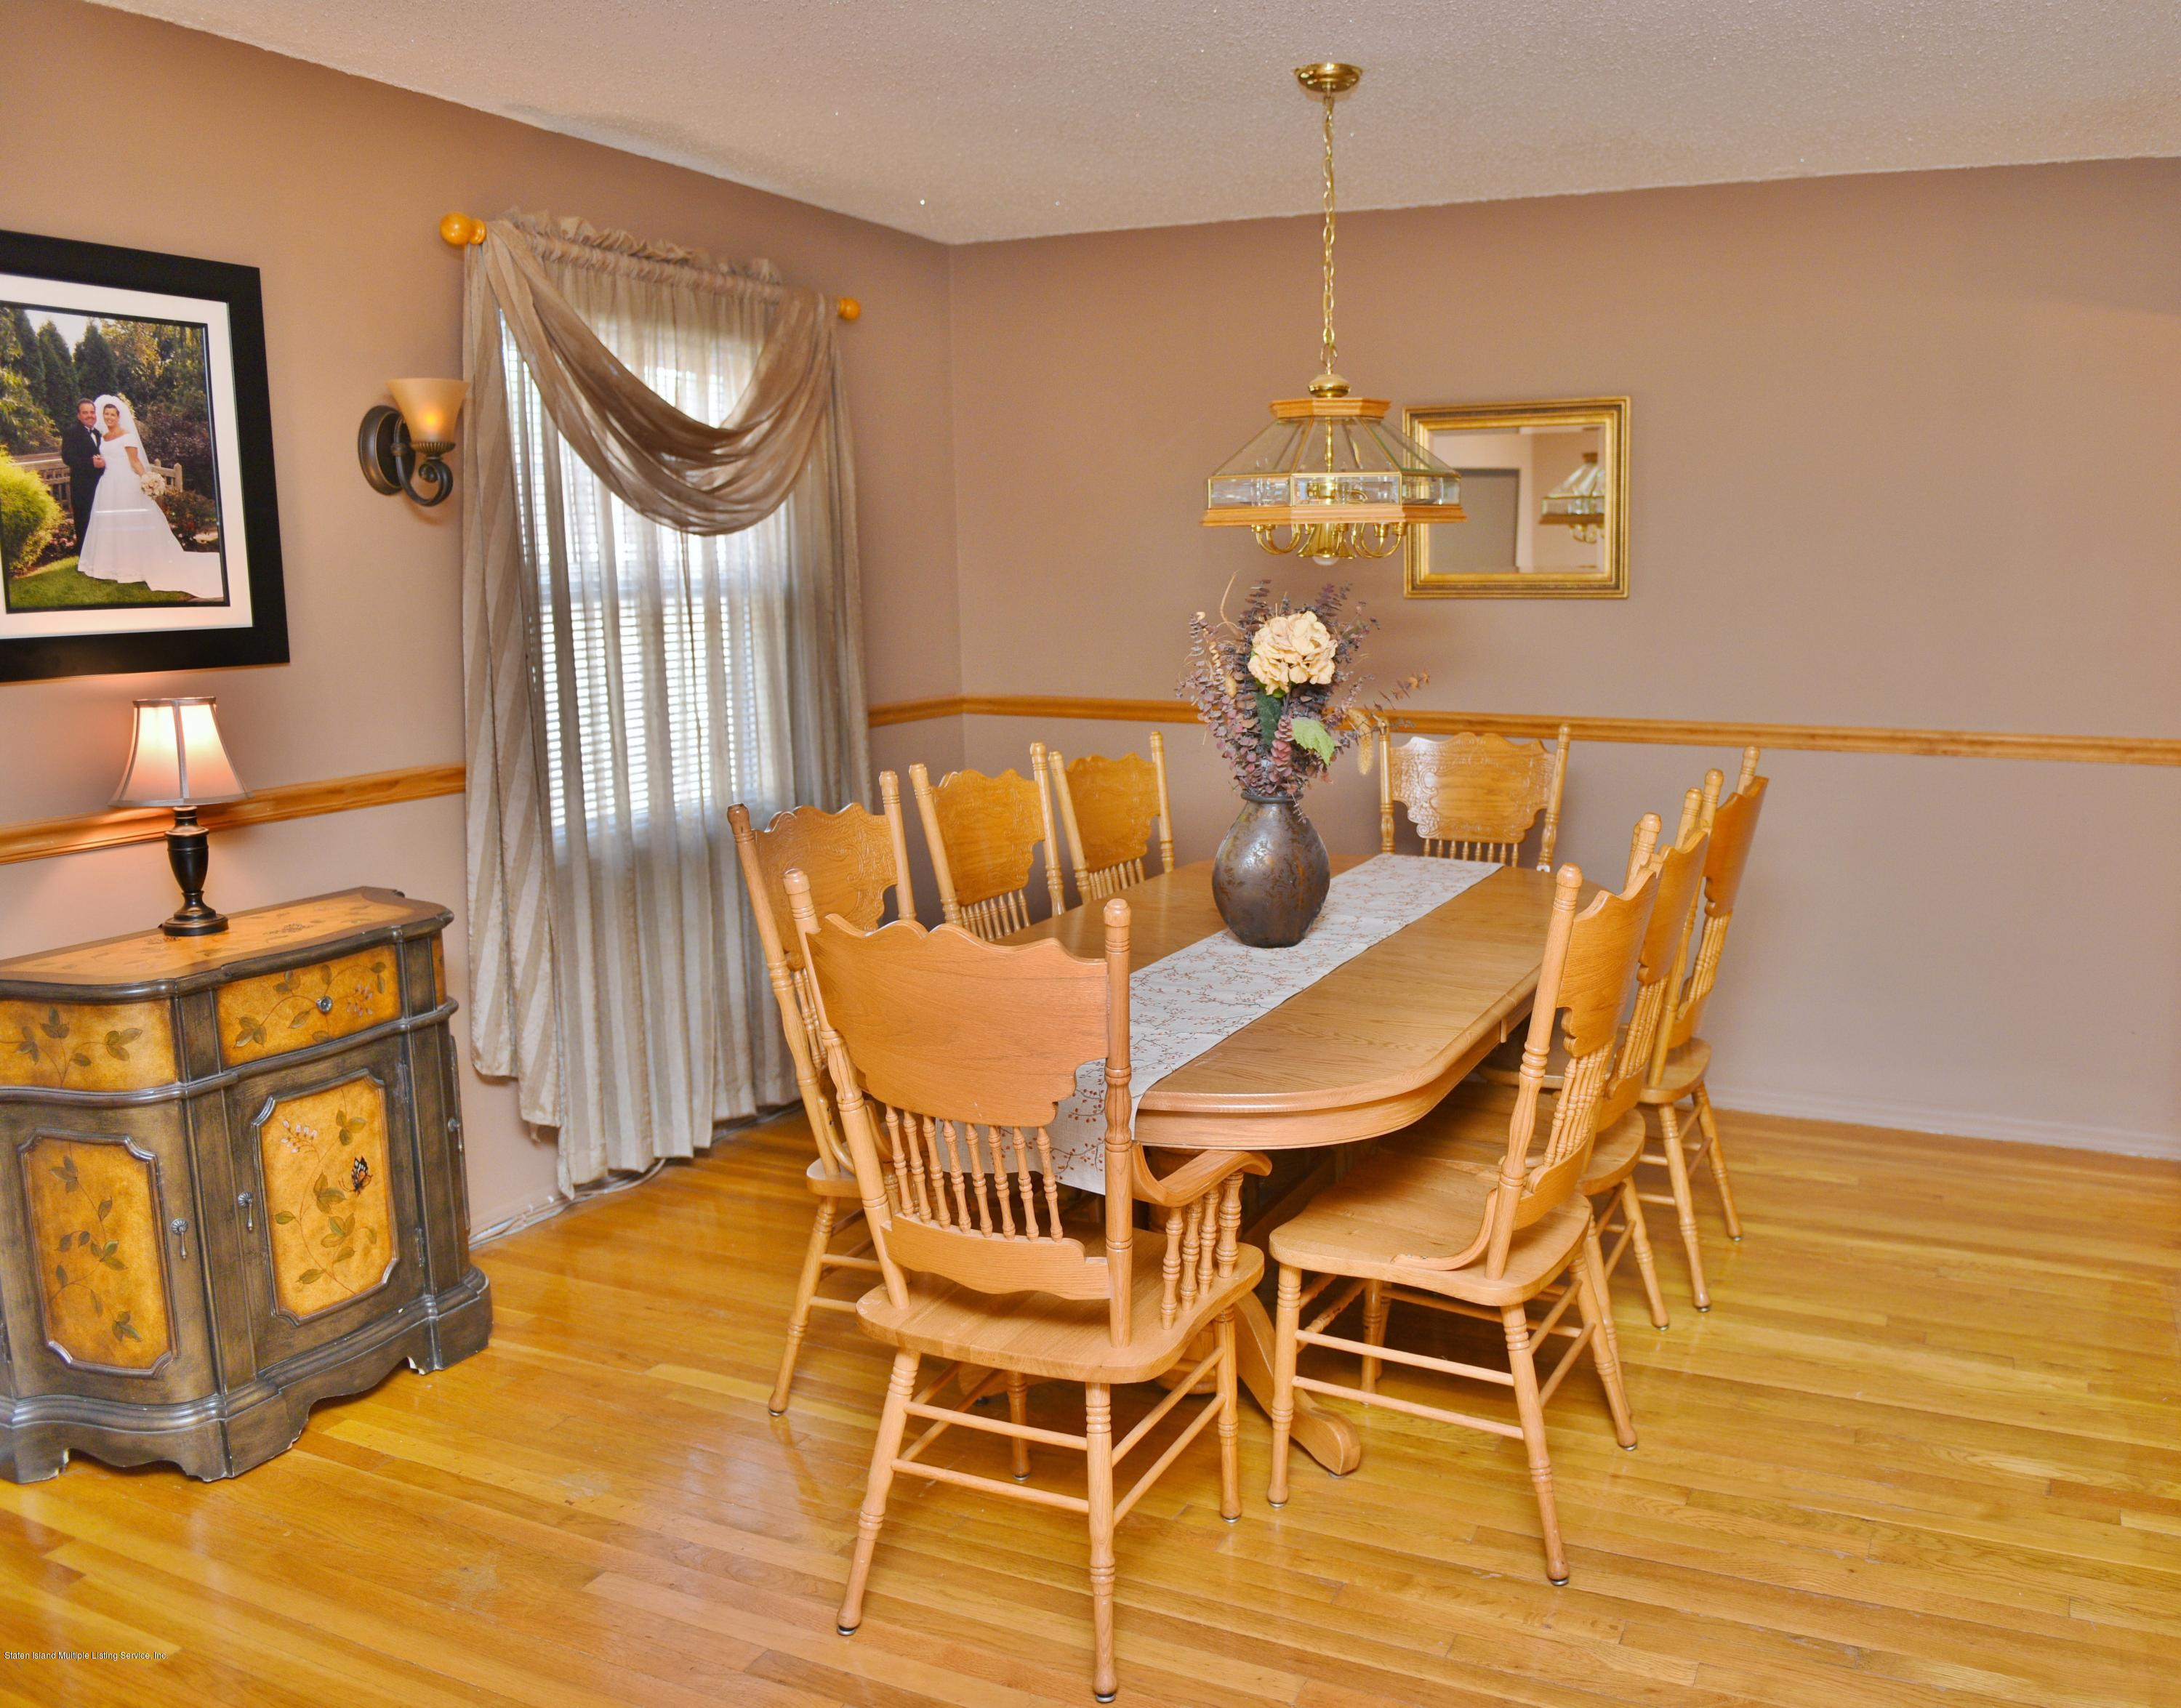 Single Family - Detached 41 Prices Lane  Staten Island, NY 10314, MLS-1129754-9